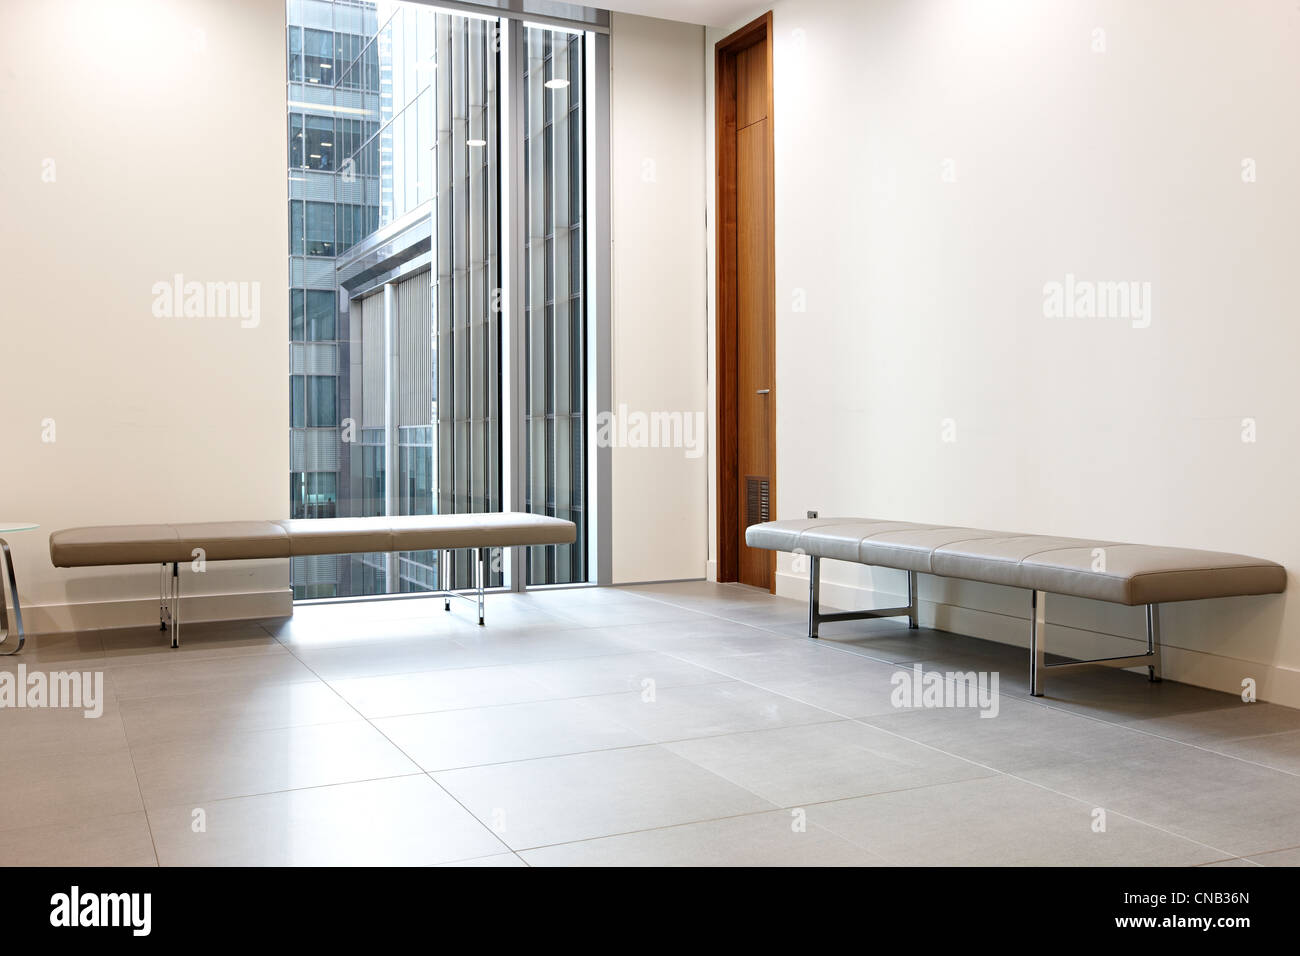 bank reception benches window city waiting room - Stock Image